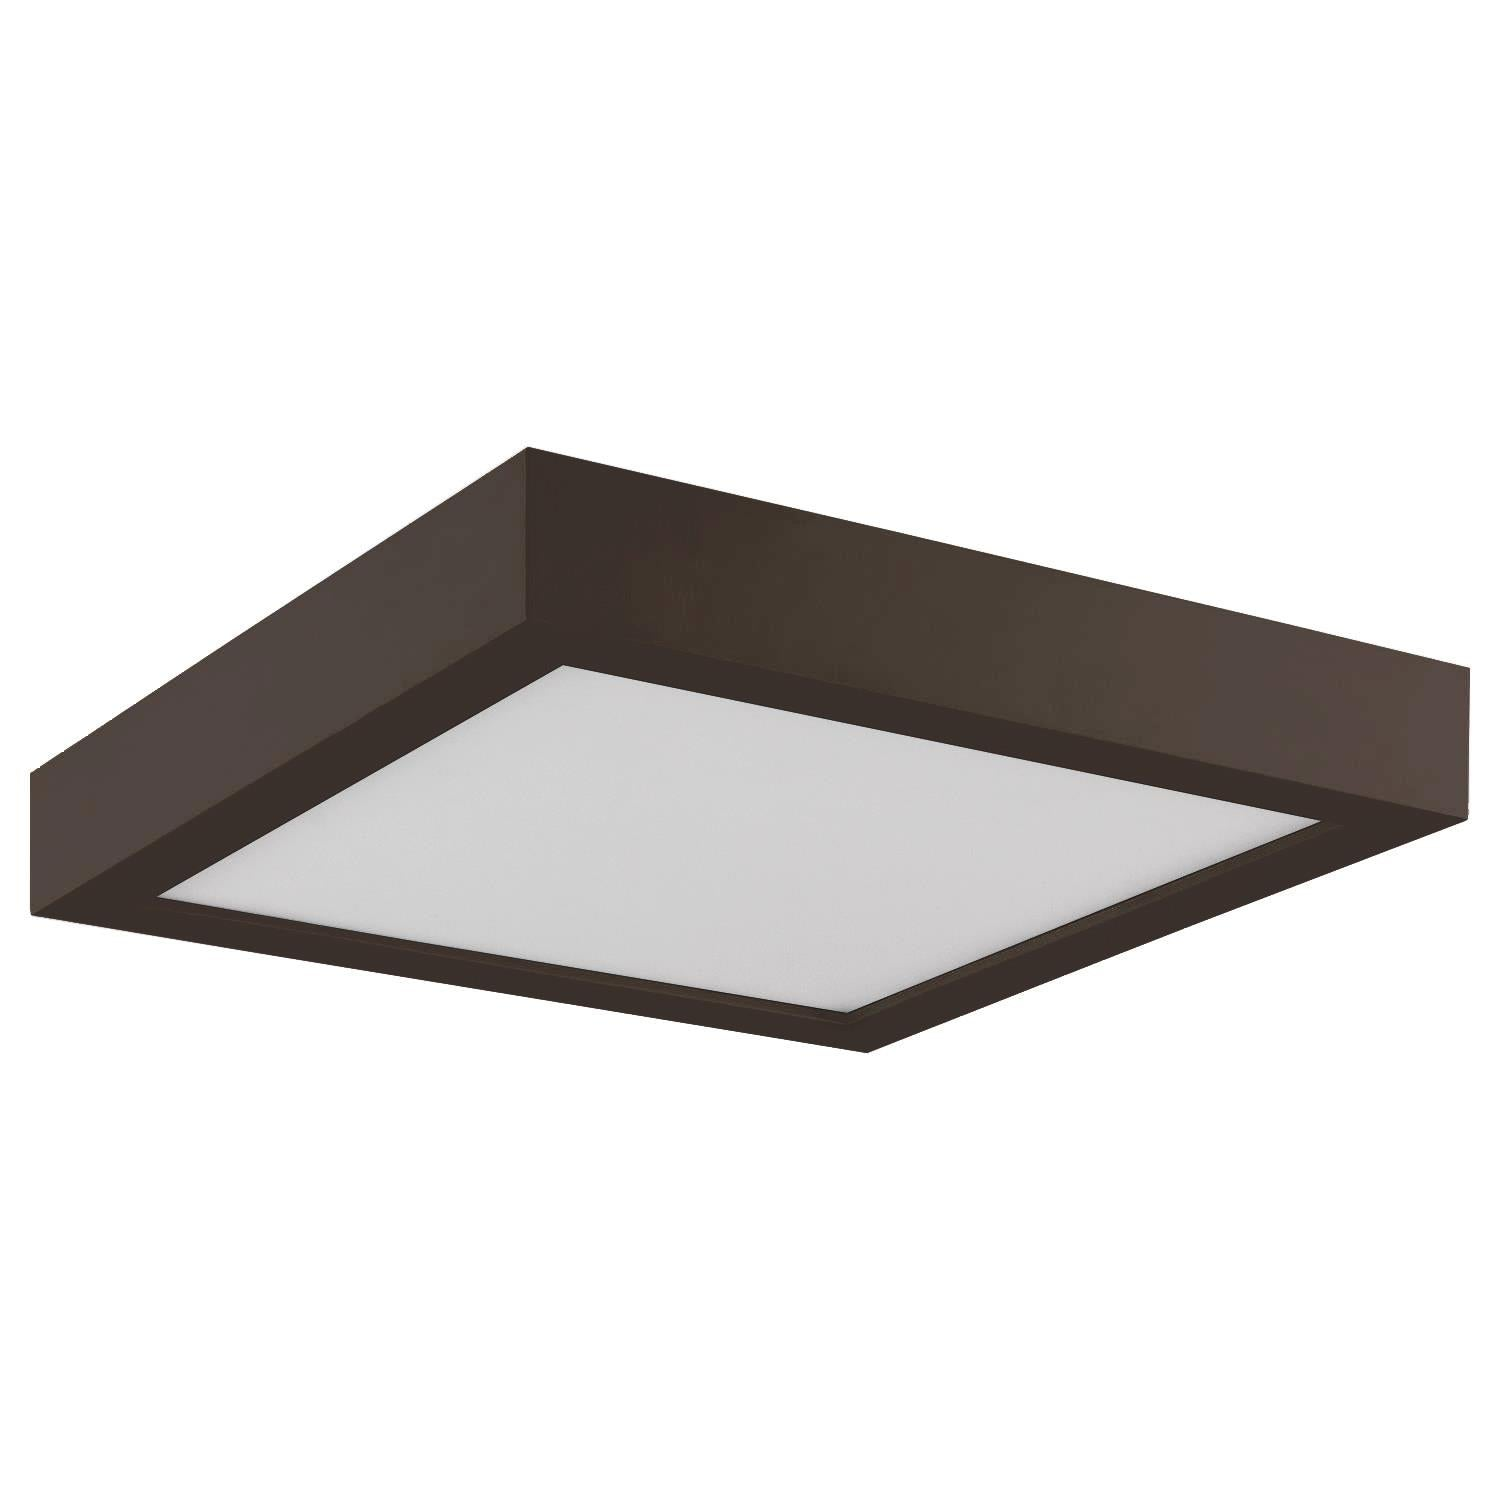 Sunlite 5.5in. Square LED Mini Flat Panel Fixture, 3000K - Warm White, Bronze Finish